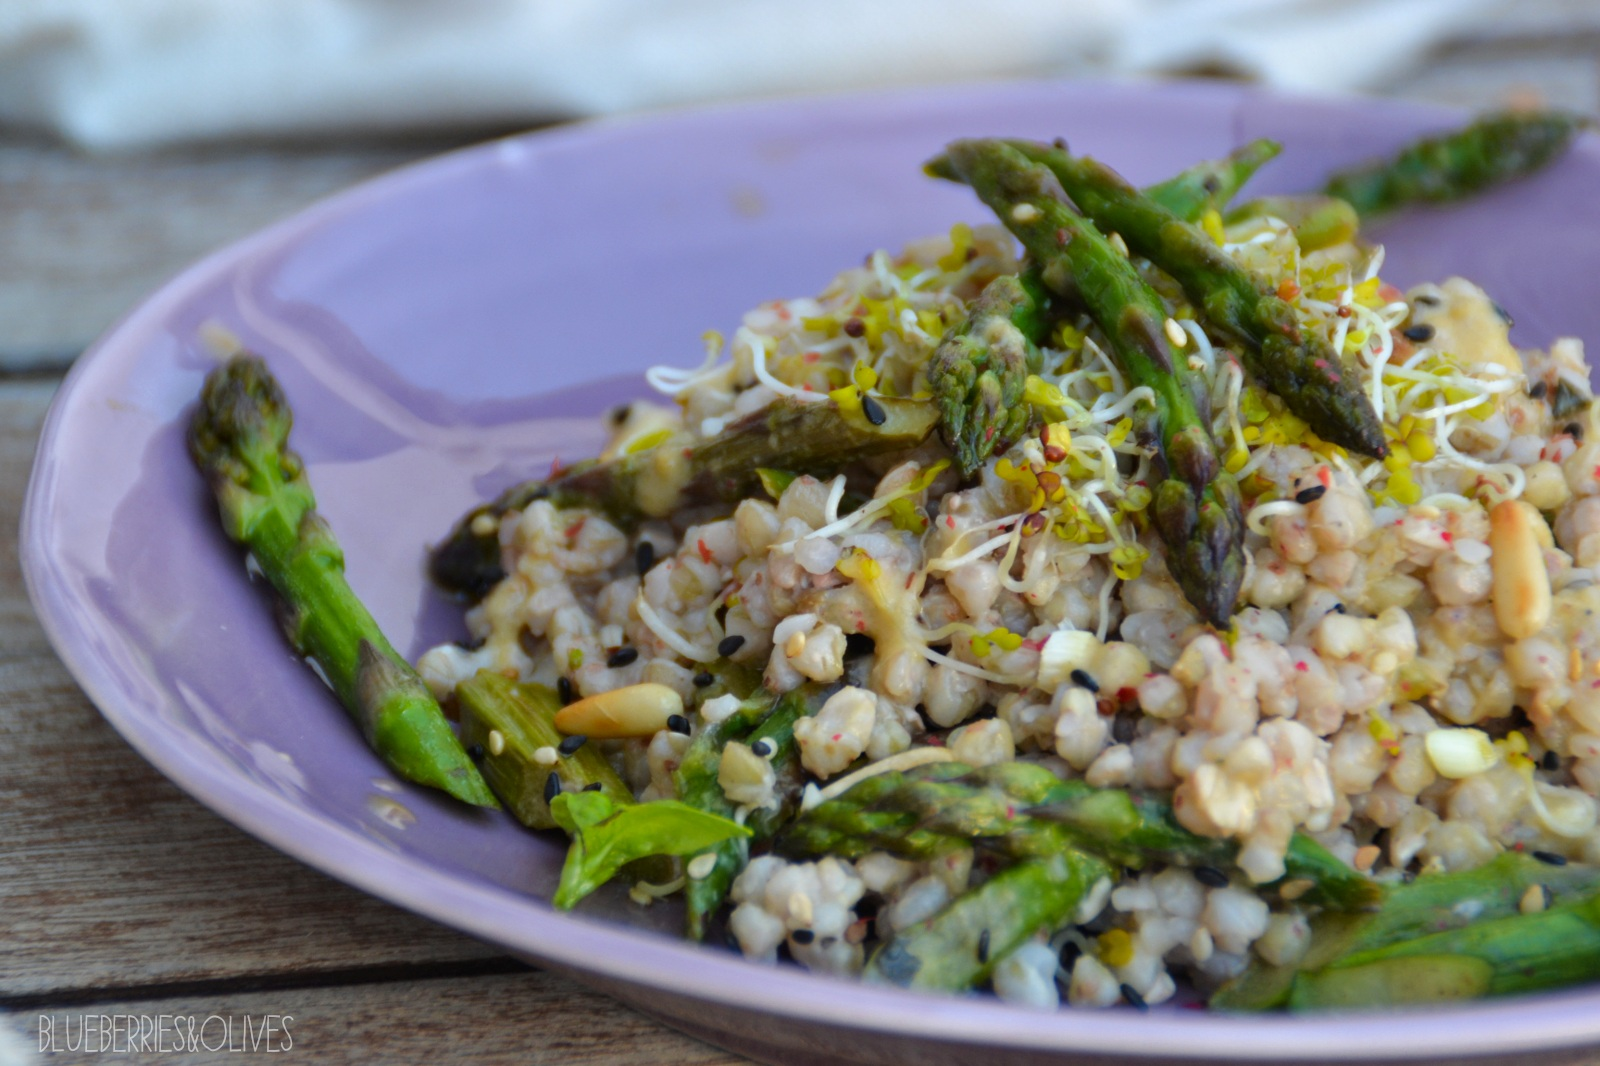 ... AND OLIVES: BUCKWHEAT AND ASPARAGUS SALAD WITH TAHINI DRESSING